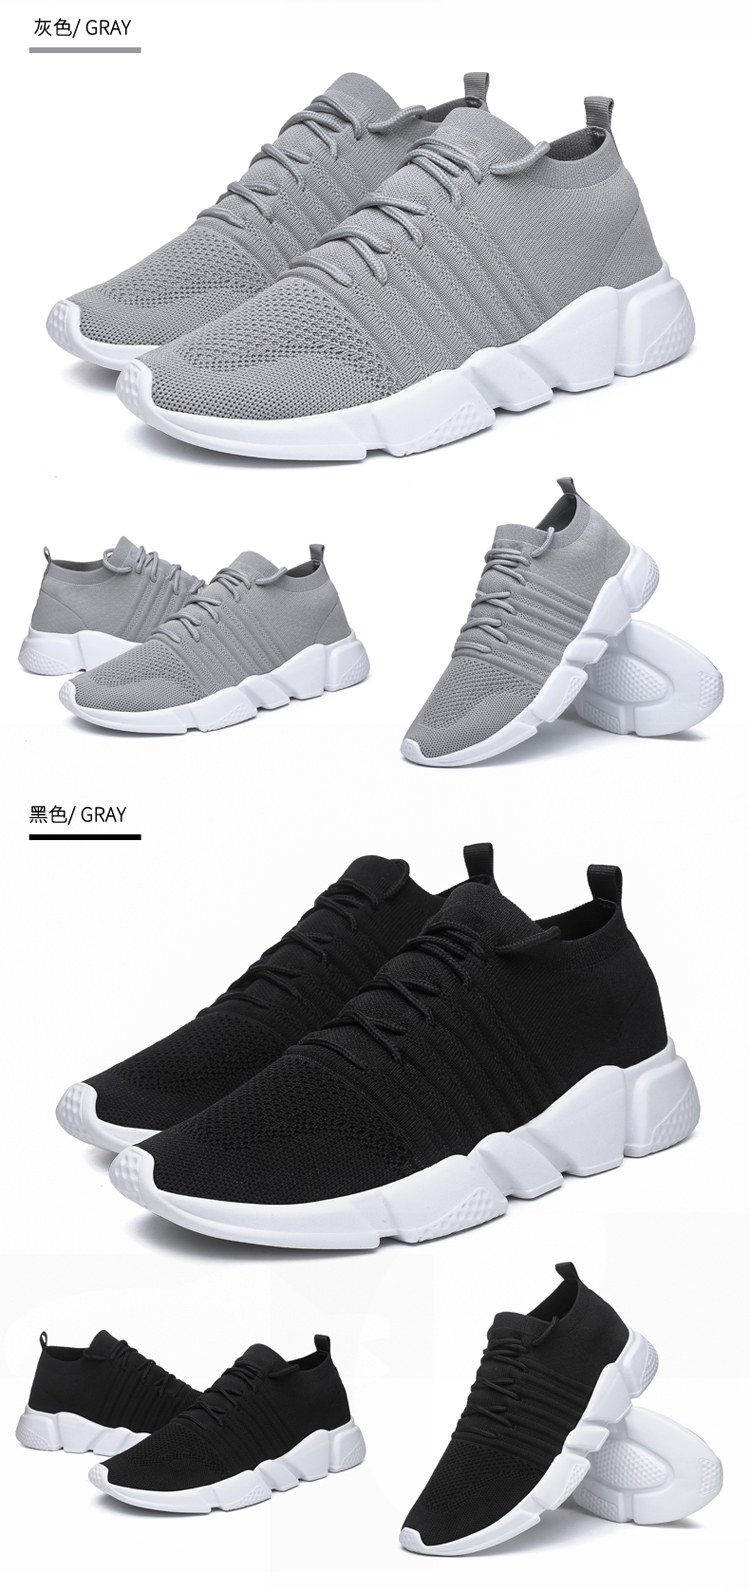 HTB1IxnaIKSSBuNjy0Flq6zBpVXag - Men Sneakers Lightweight Flykint Casual Shoes Men Slip On Walking Socks Shoes Trainers Mesh Flat Homme Big Size Tenis Masculino